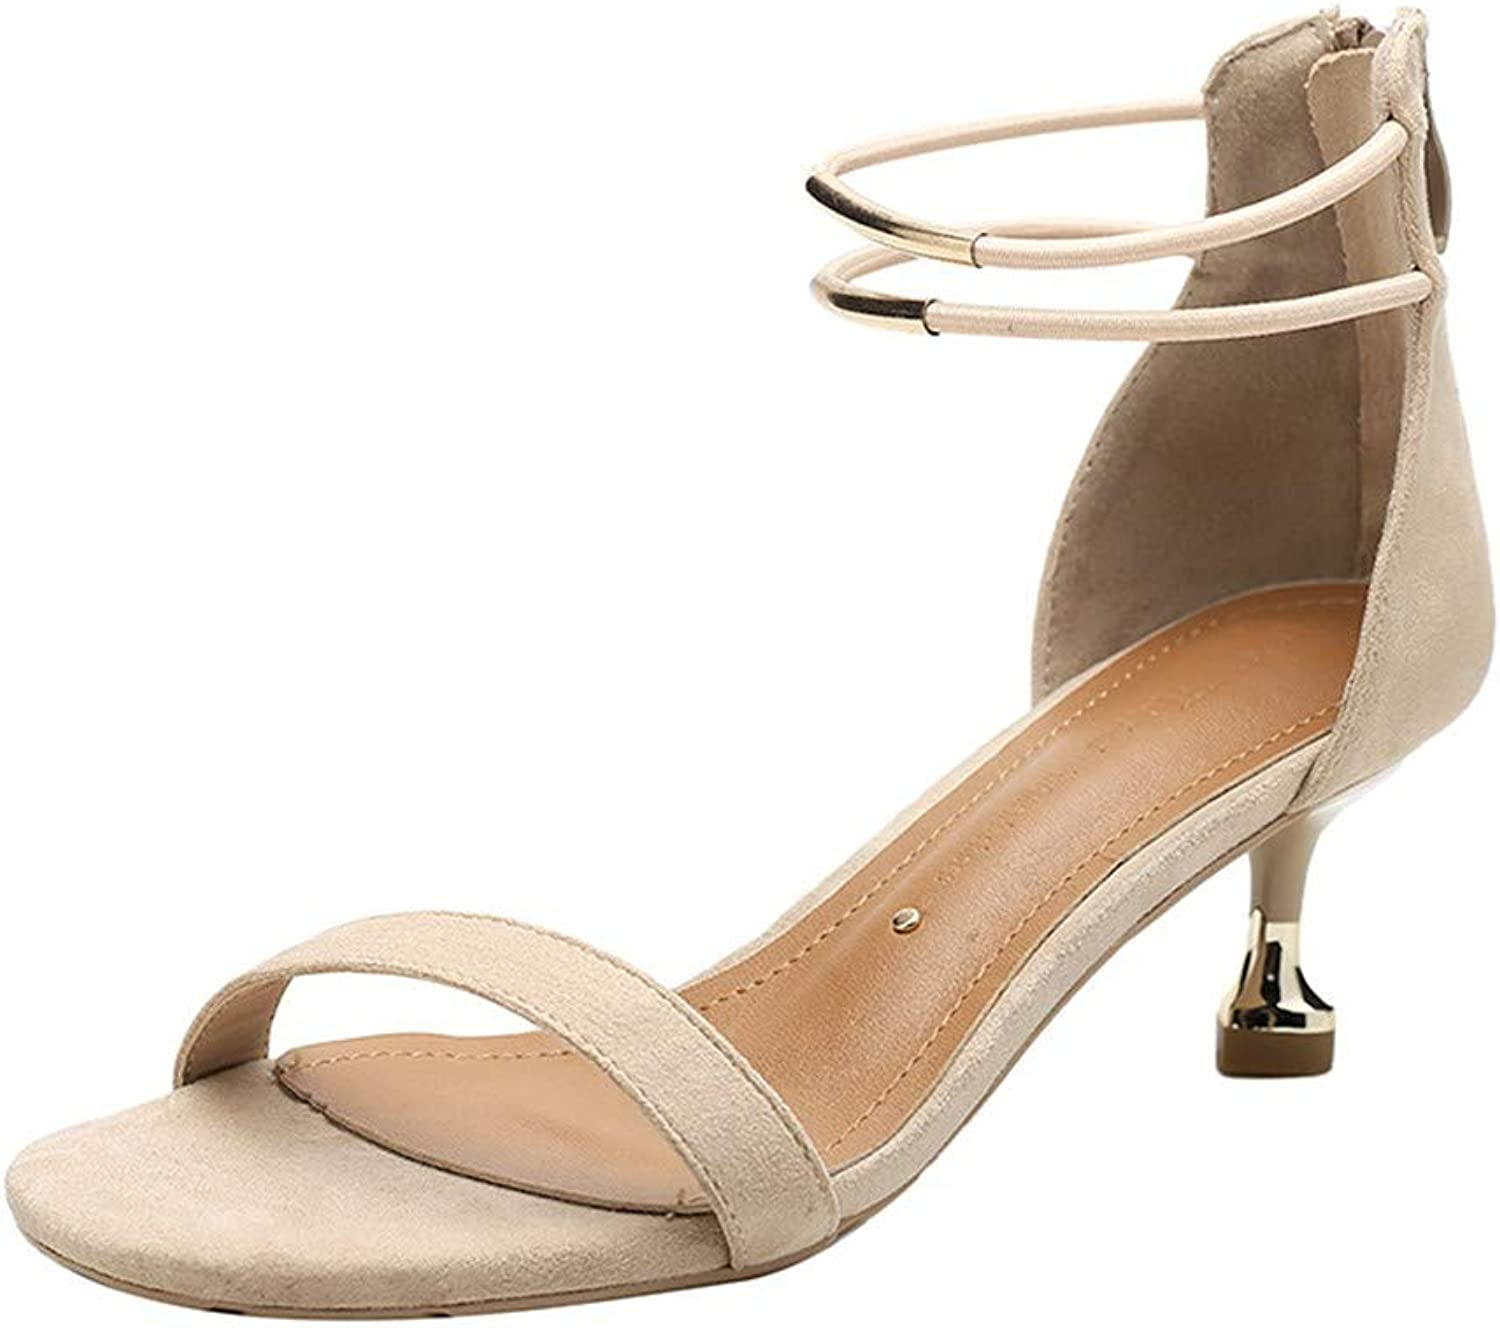 Top Shishang Apricot One-Button Buckle Stiletto Sandals,Womens Stiletto Party Evening High Heel Platforms Court shoes